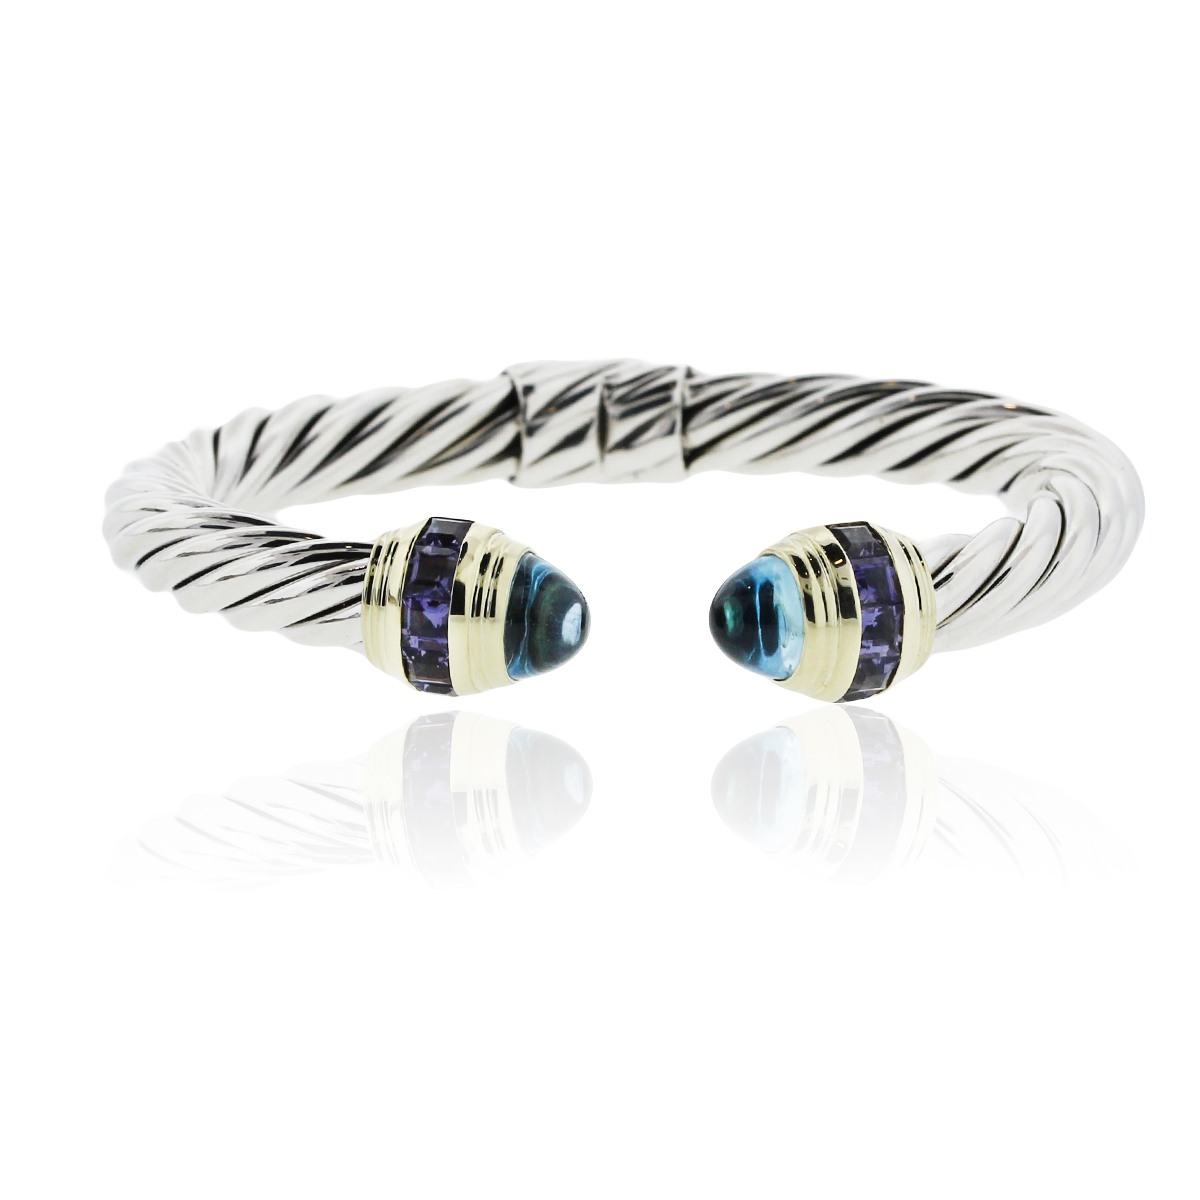 David yurman cable blue topaz iolite bangle bracelet for David yurman inspired bracelet cable